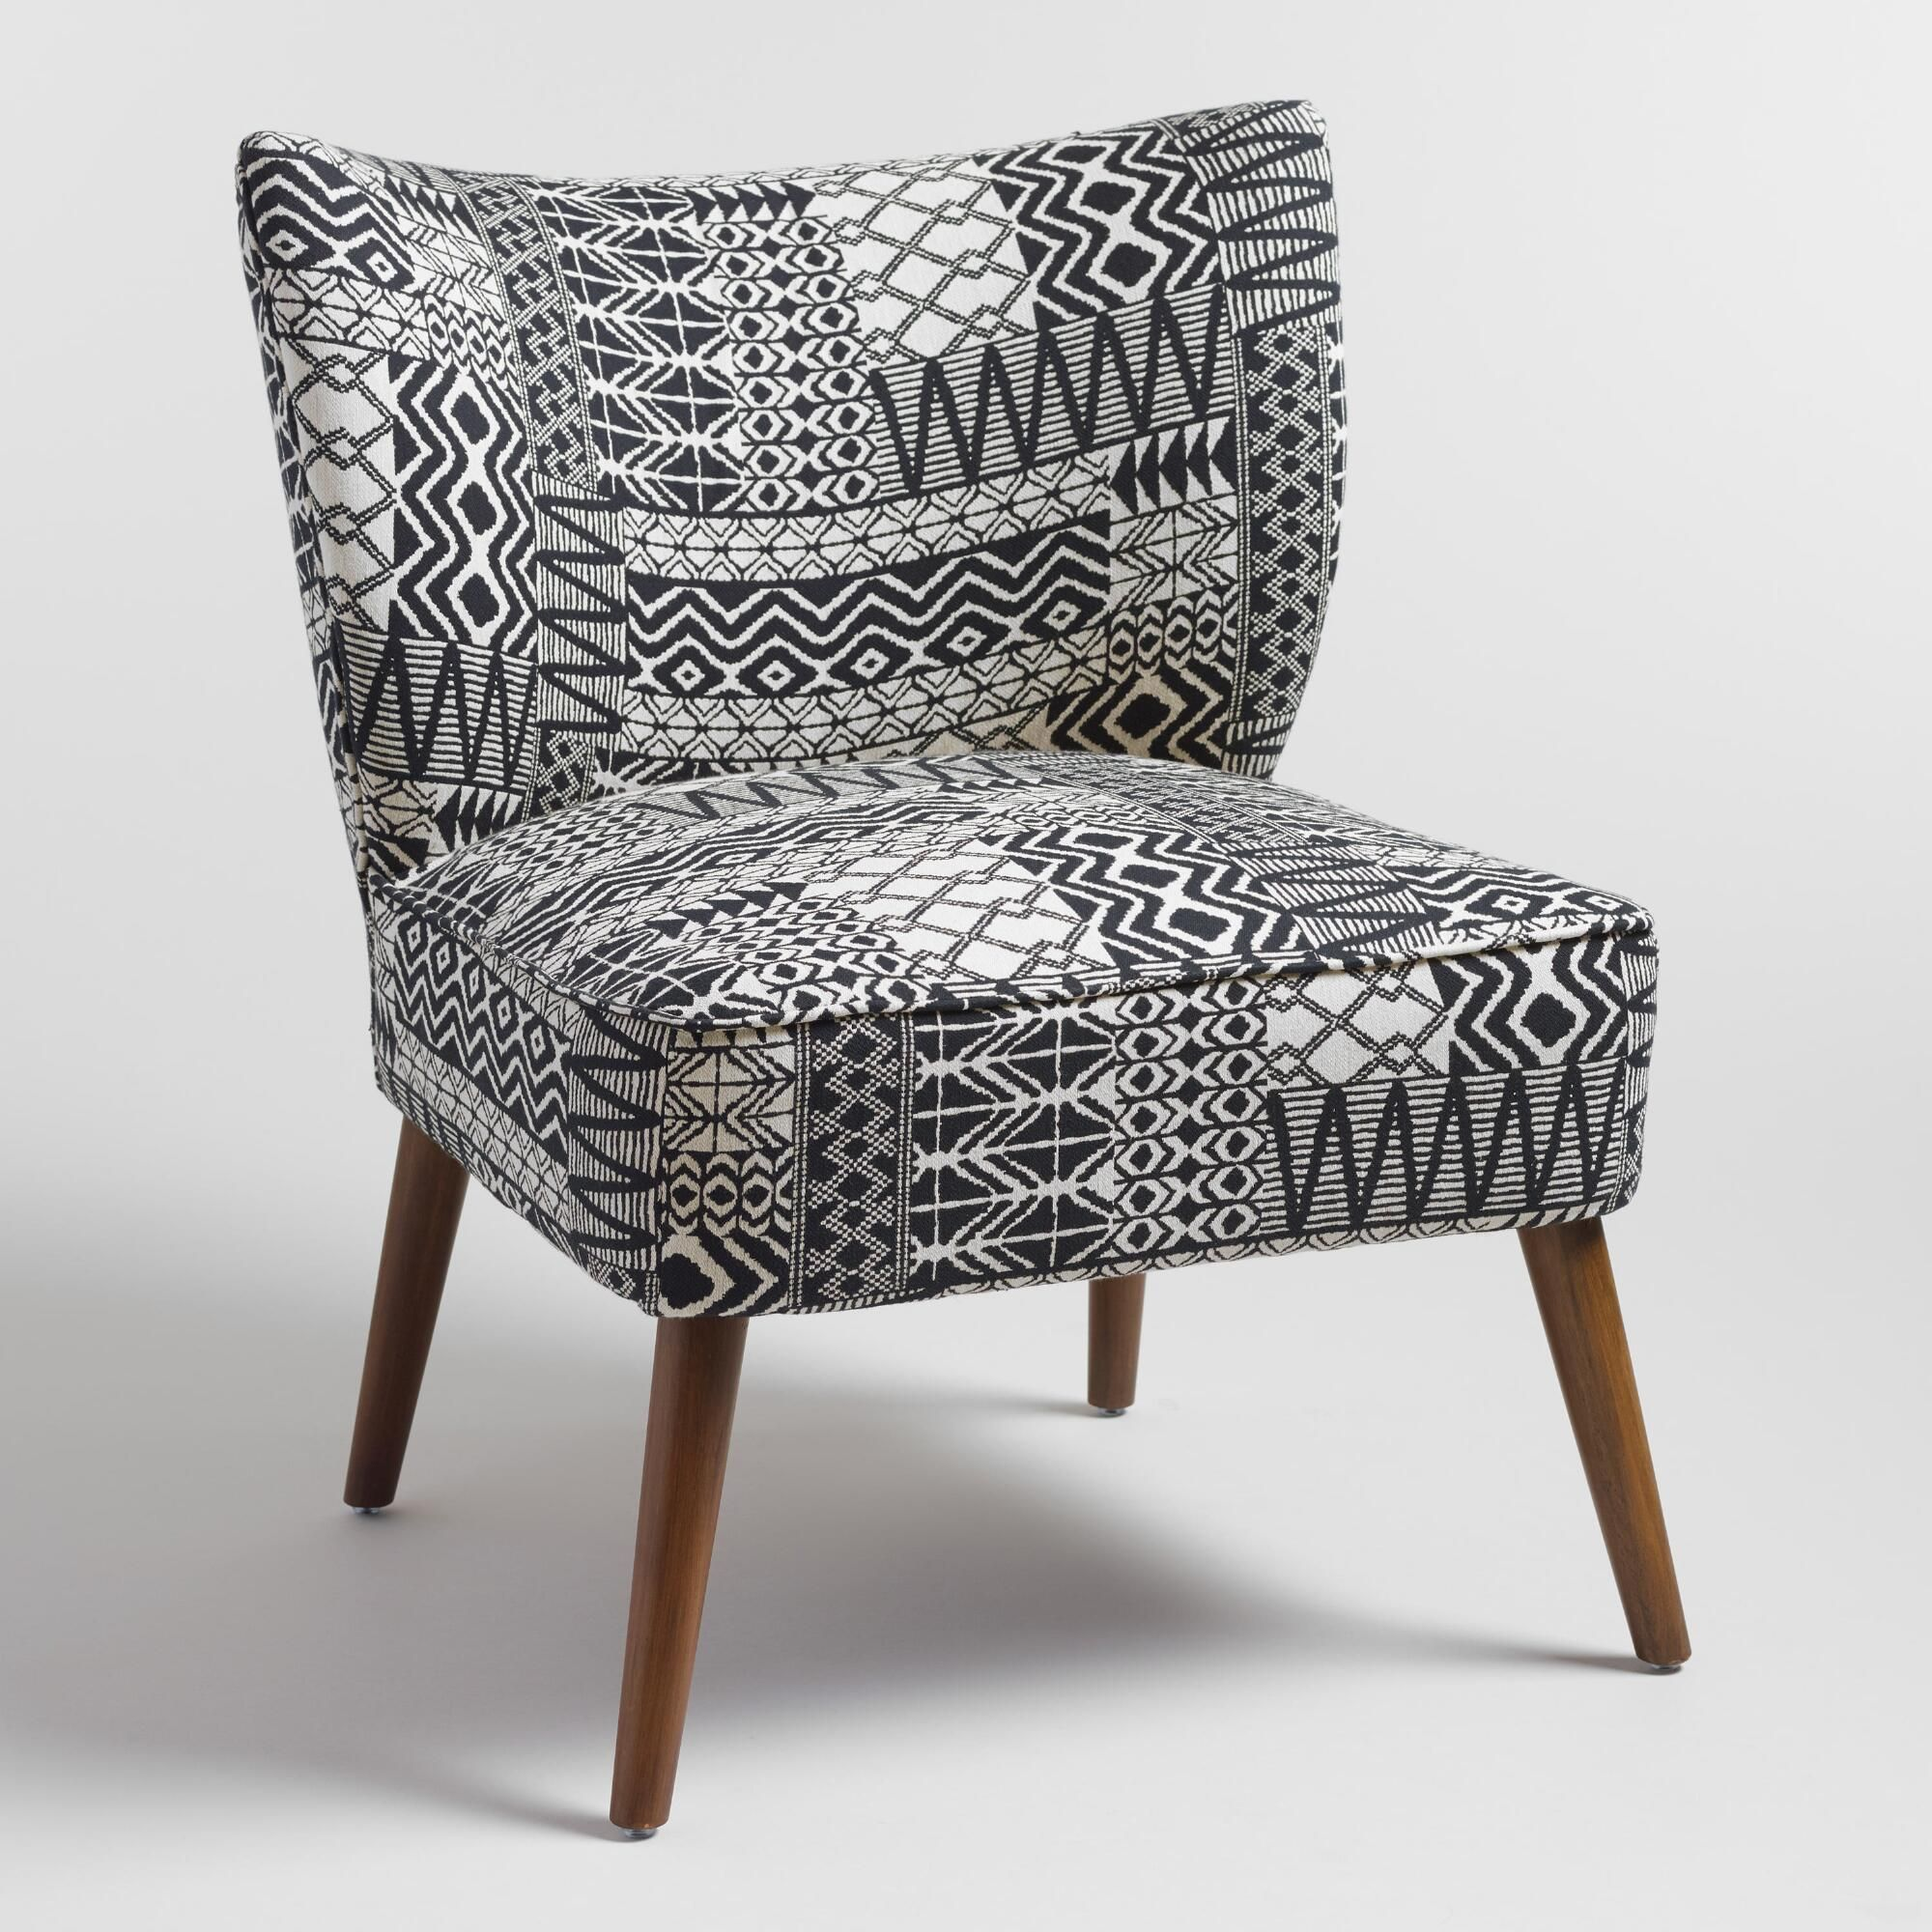 Our Plush Accent Chair Brings A Boho Vibe To Any E With Black And White Tribal Print Jacquard Upholstery Splayed Wood Legs Www Worldmarket